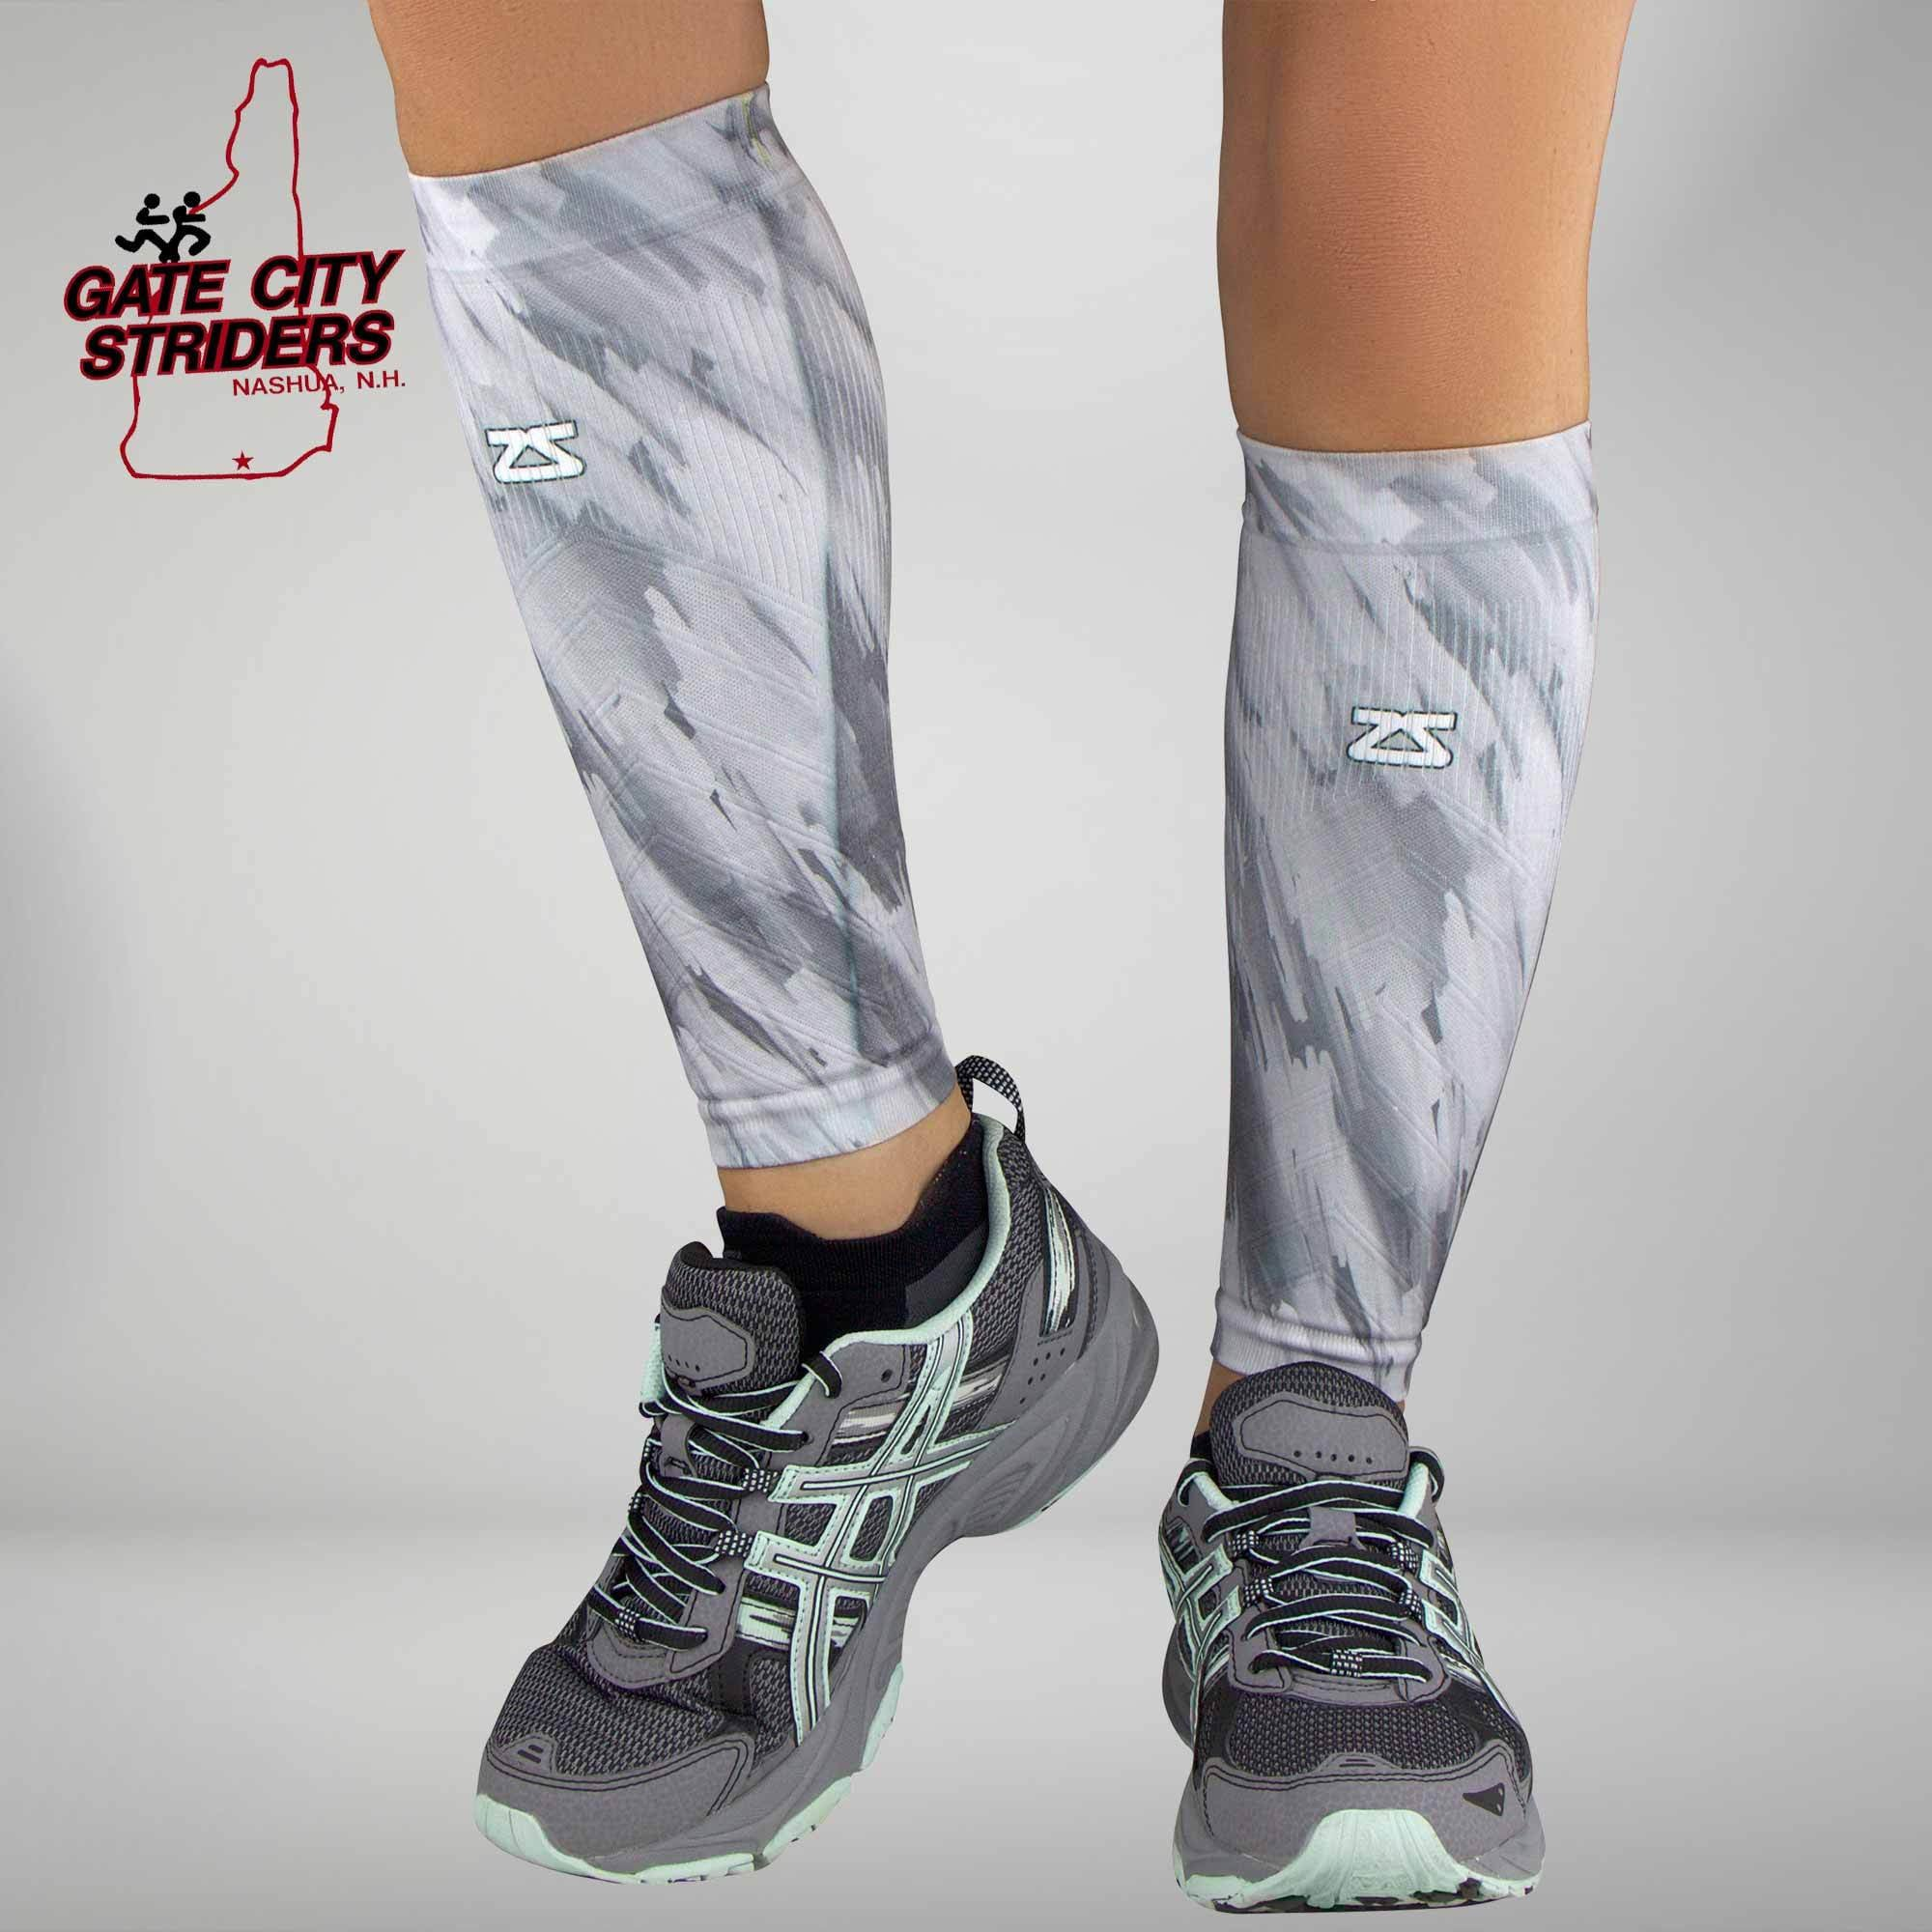 Gate City Striders Compression Leg Sleeves